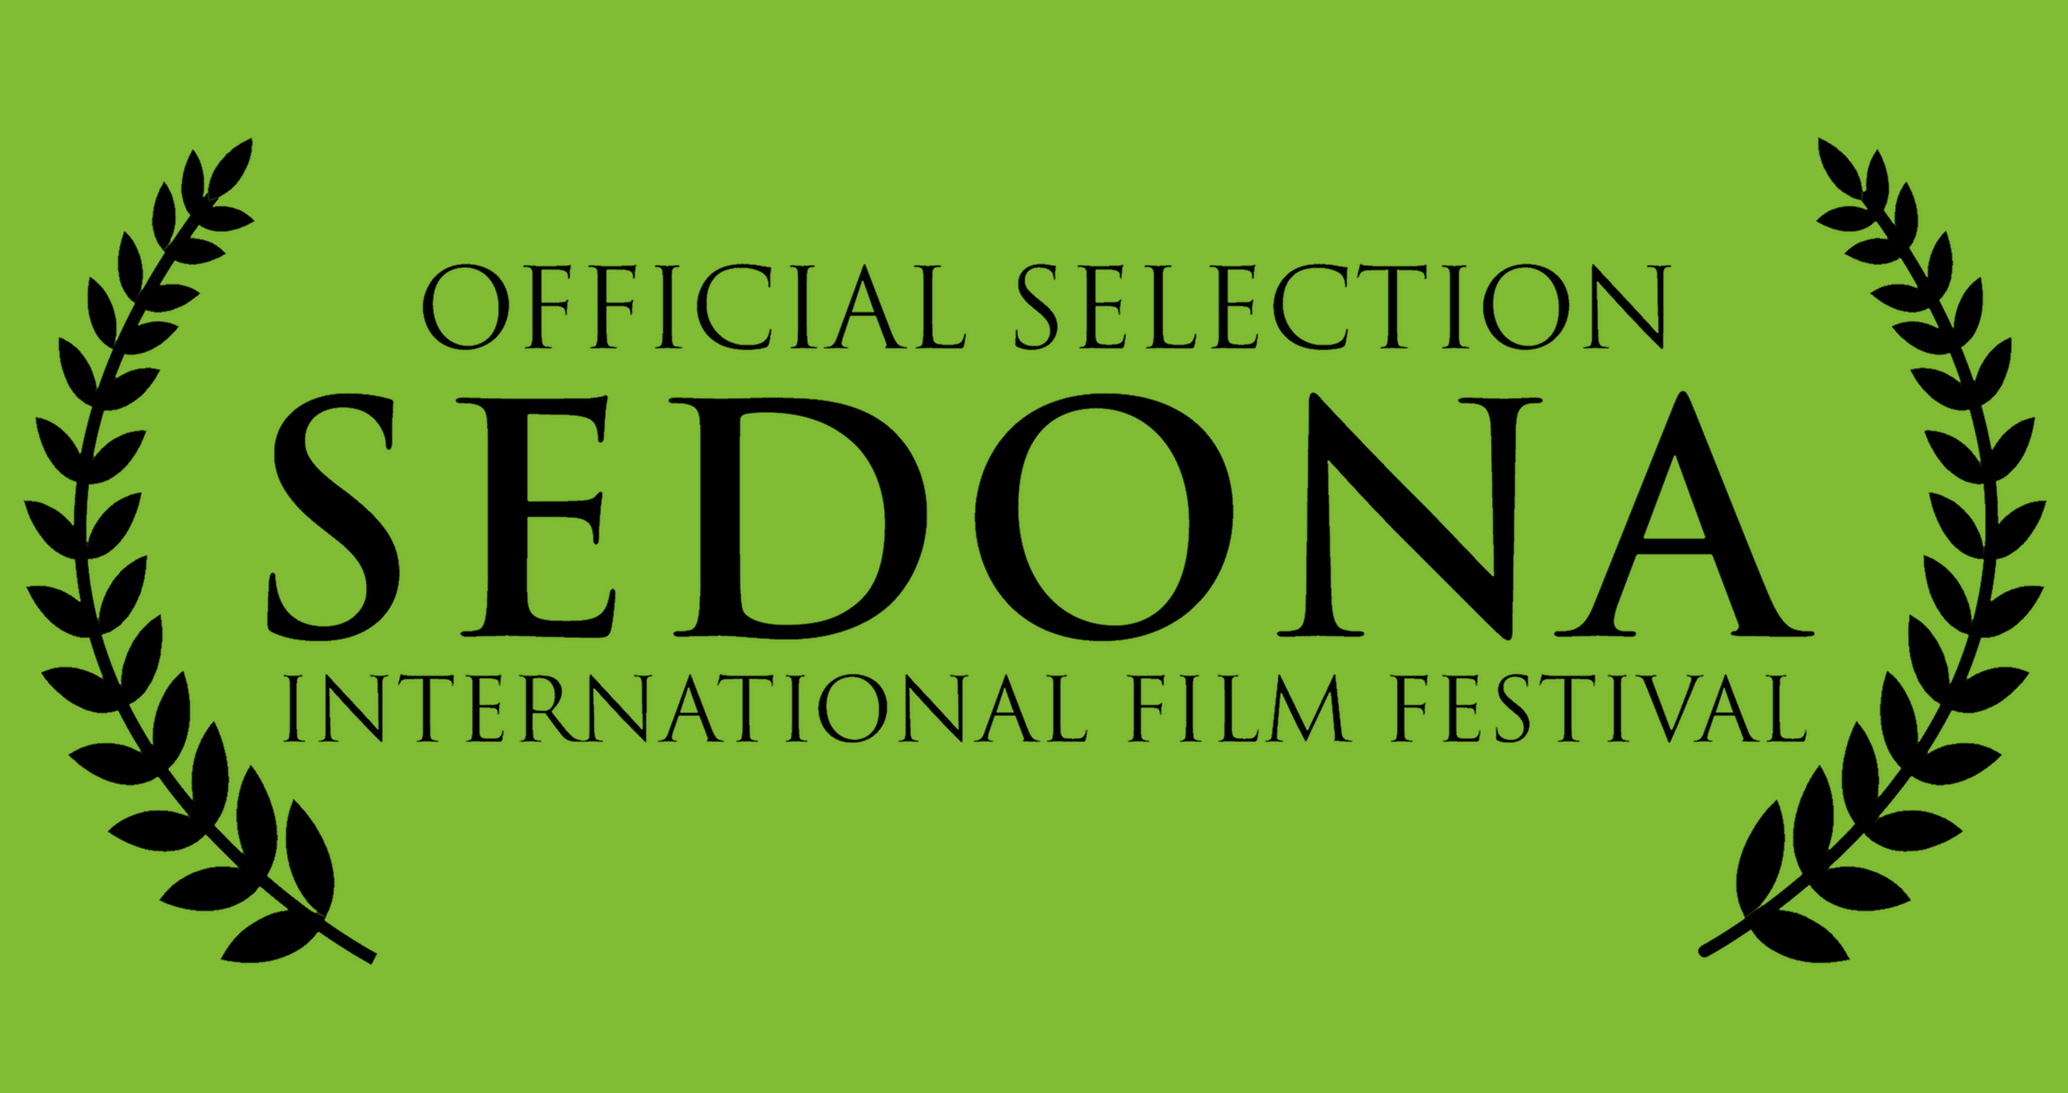 Sedona International Film Festival - February 24 - March 4